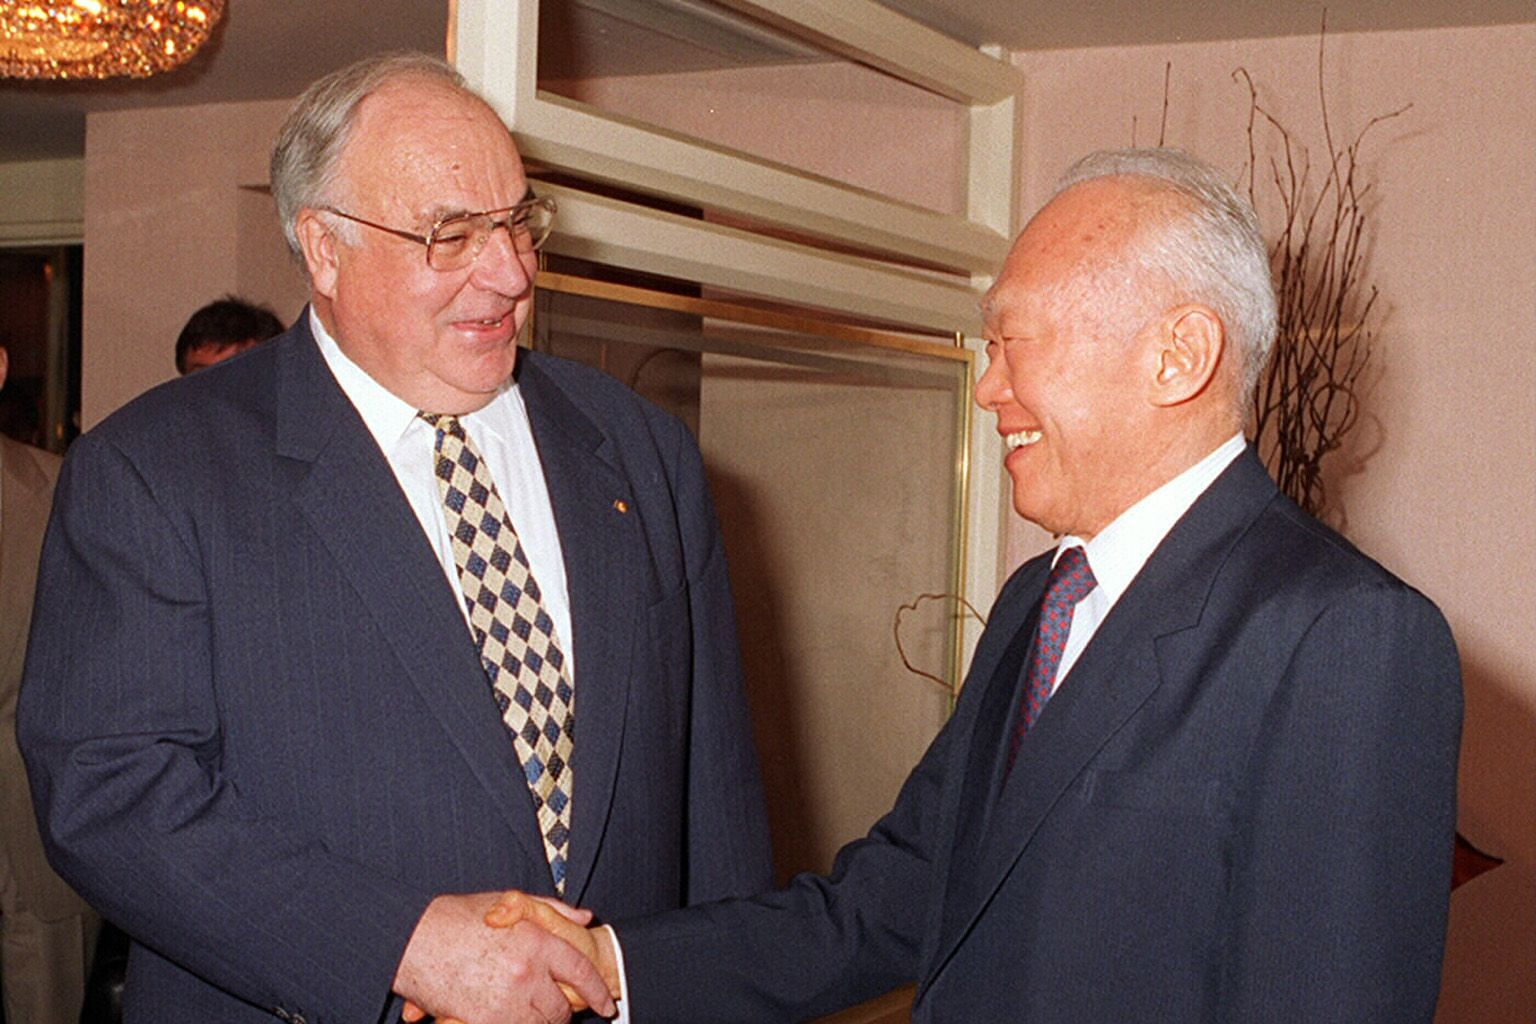 """Then German Chancellor Helmut Kohl meeting Senior Minister Lee Kuan Yew for a private working lunch in Singapore on Nov 20, 1995. Mr Lee had a personal relationship with Dr Kohl whom he lauded as a """"great German who reunified Germany, and as a greate"""